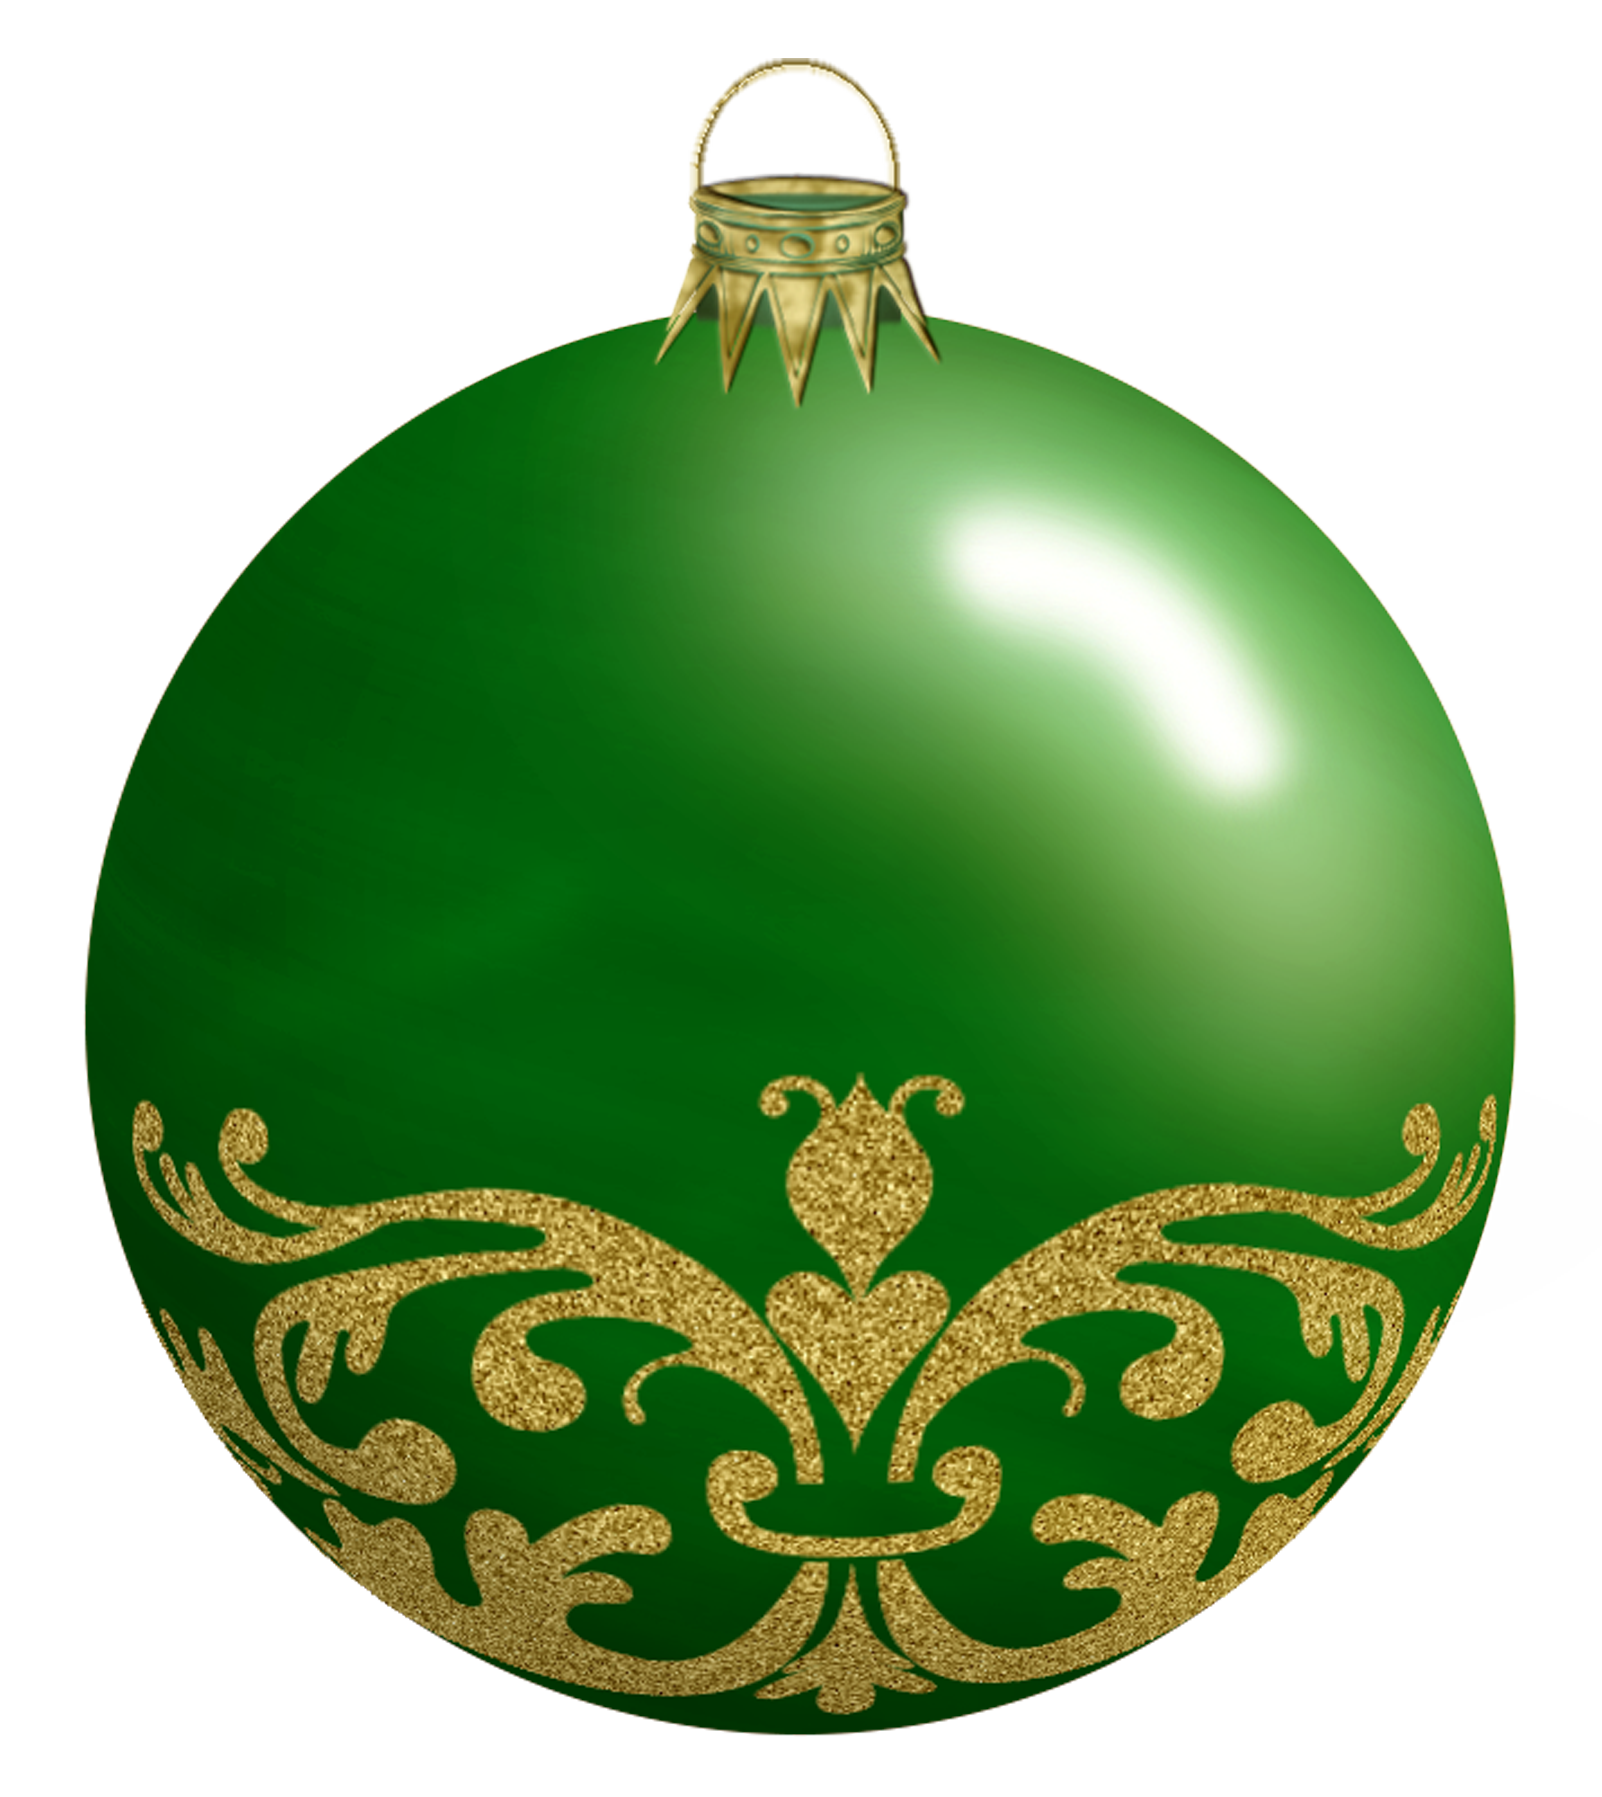 Resolution: 1602 x 1797 | Format: PNG | Keywords: Christmas, Ball, Game, Xmas, Decoration, Play, Christian